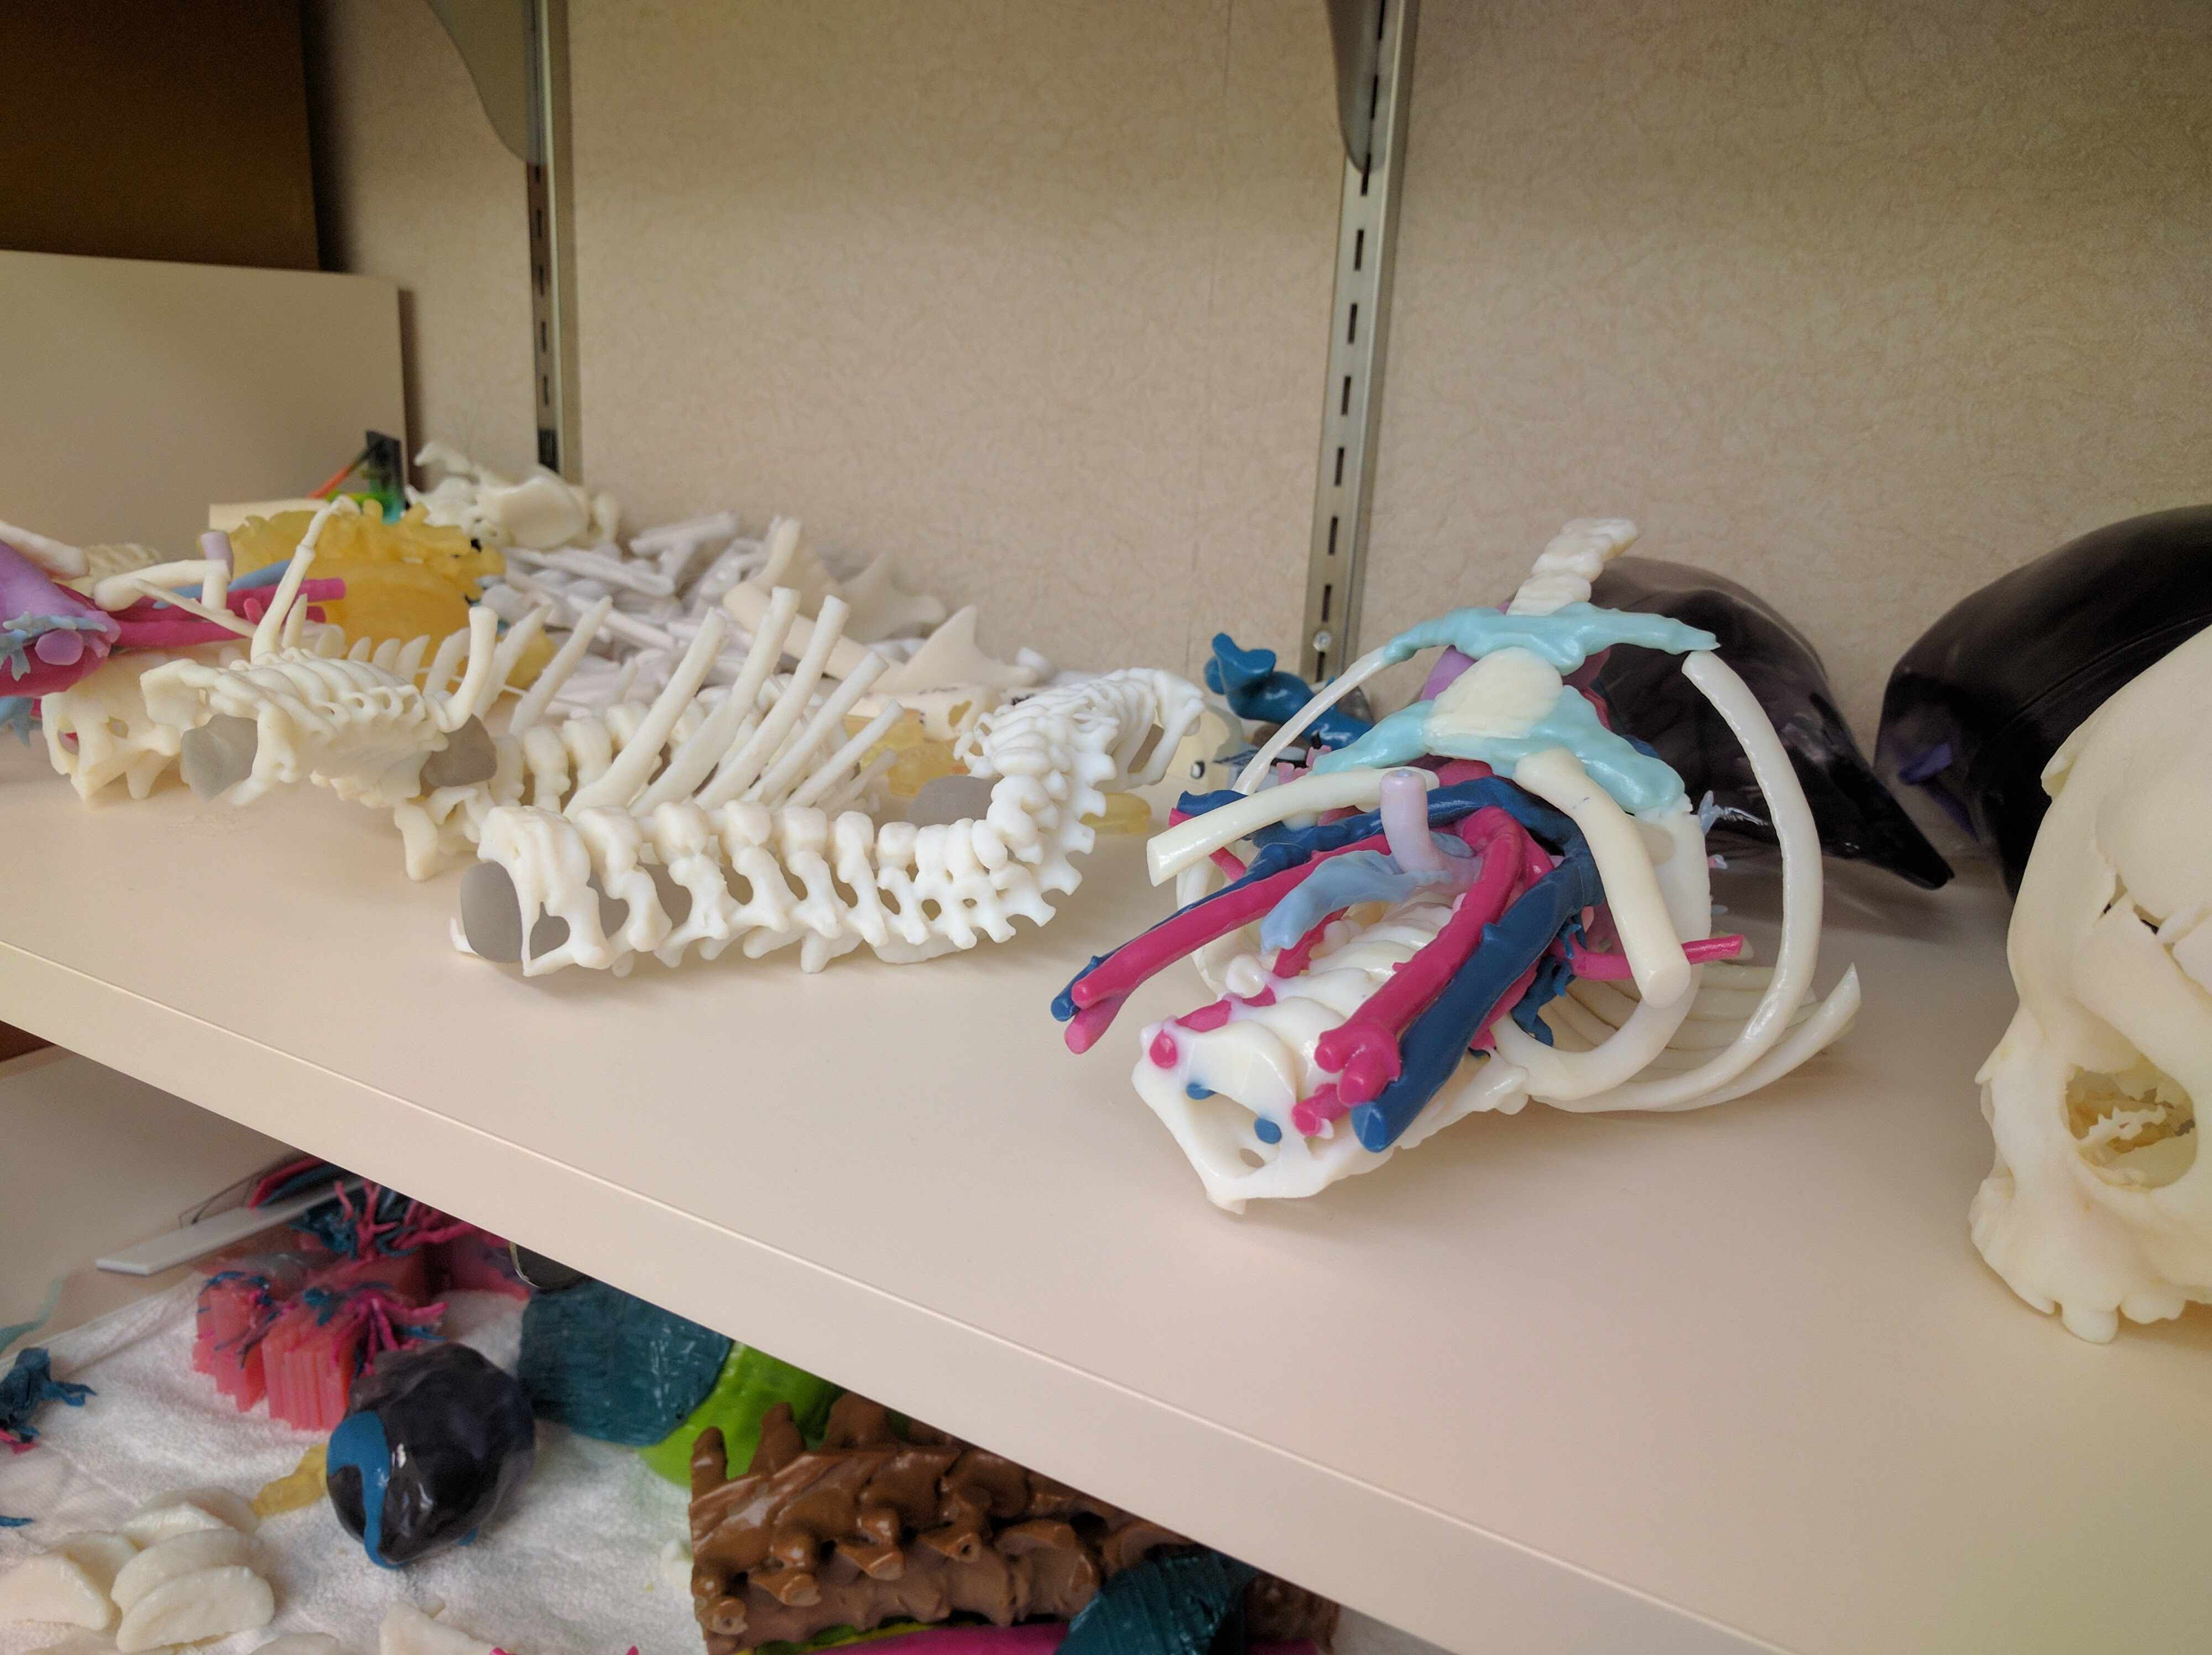 a shelf of various 3D models from radiology group